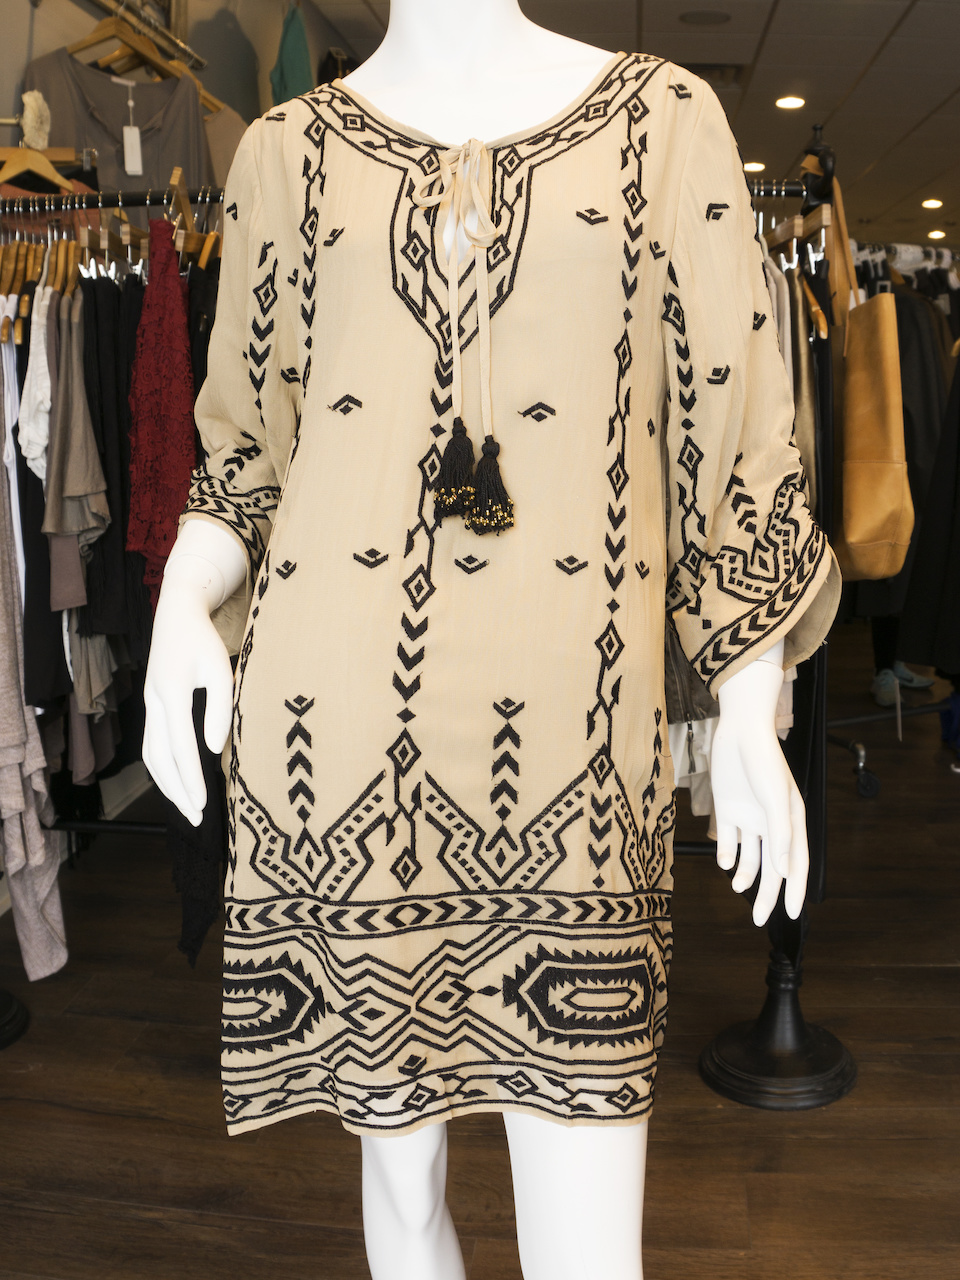 Tolani printed shift dress with tassle, $179; Black lace-up clogs, $89